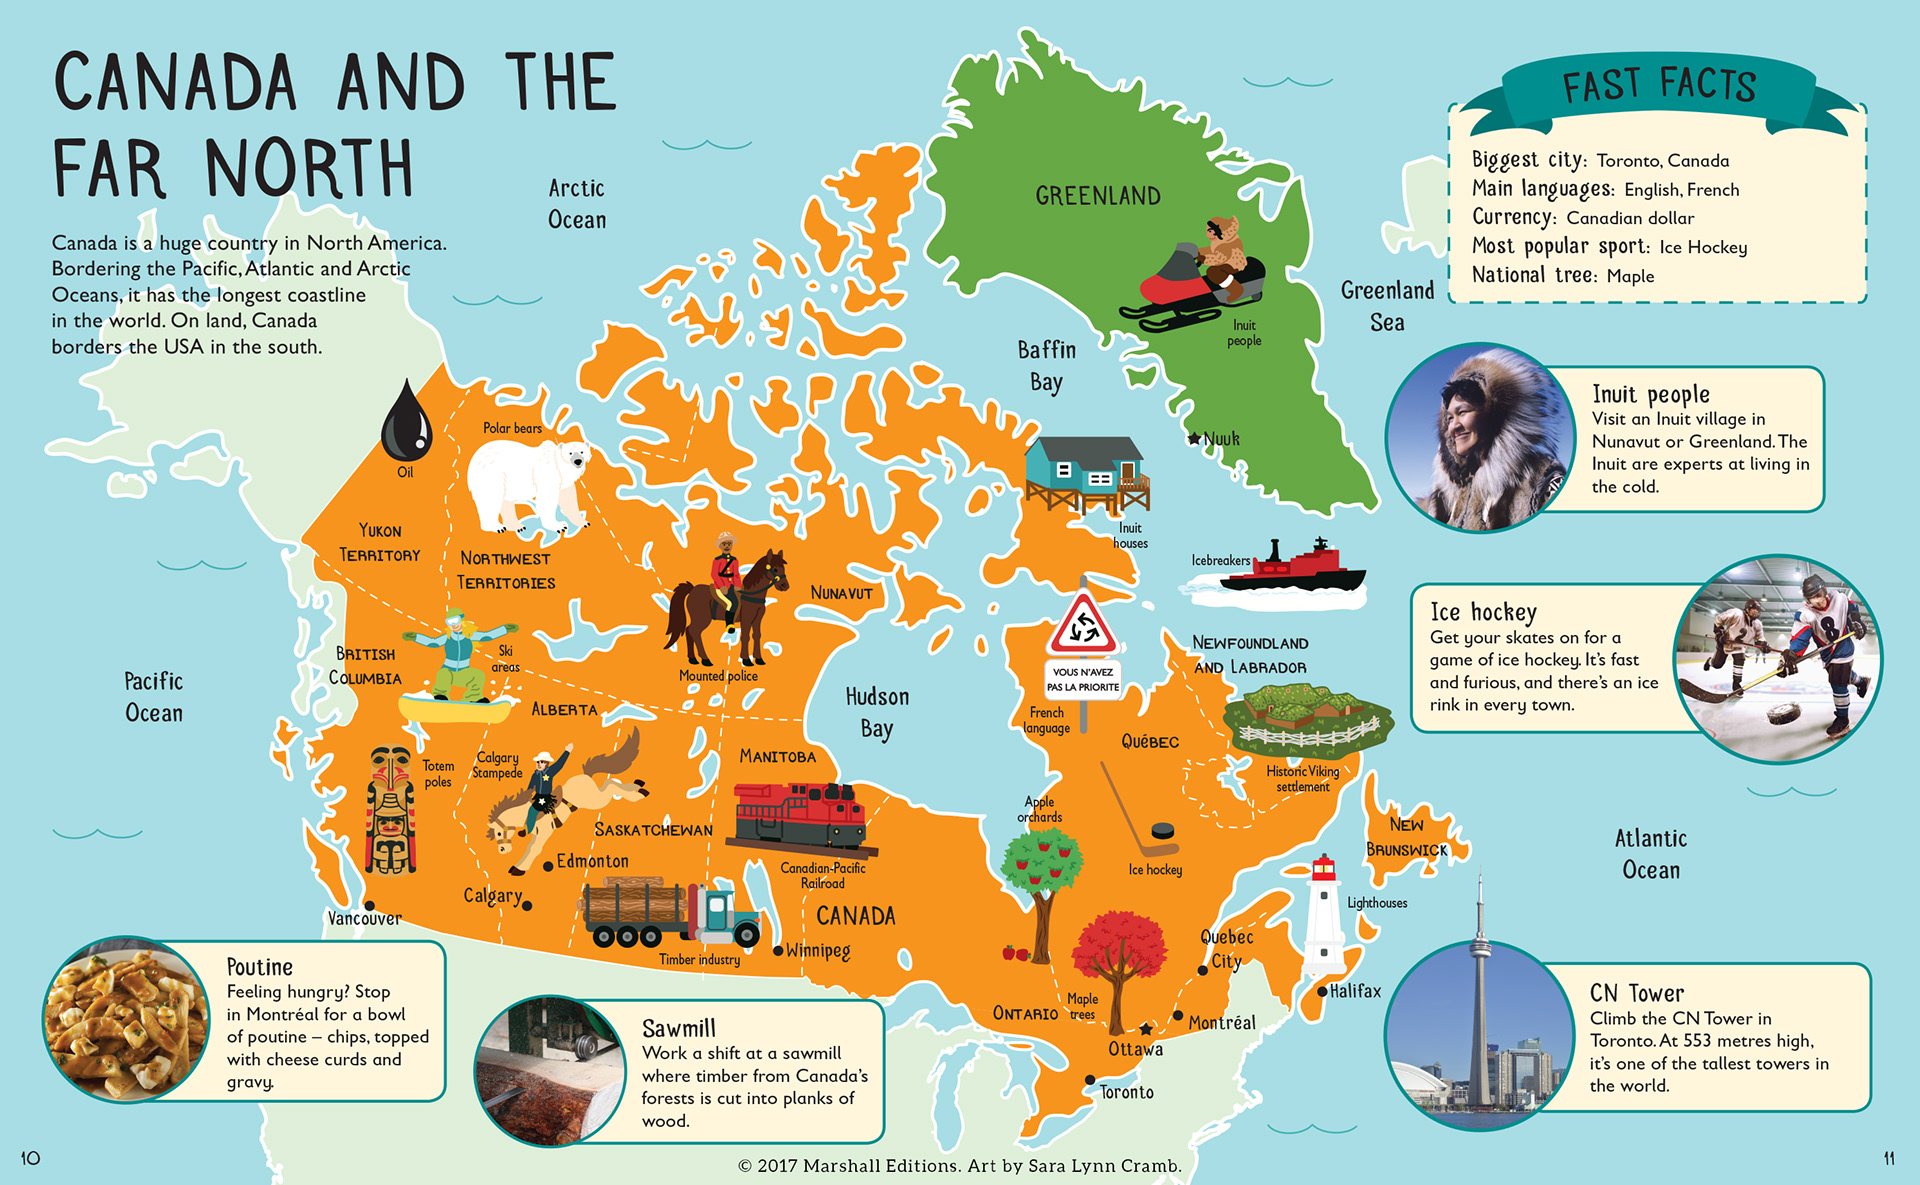 Canada and the Far North